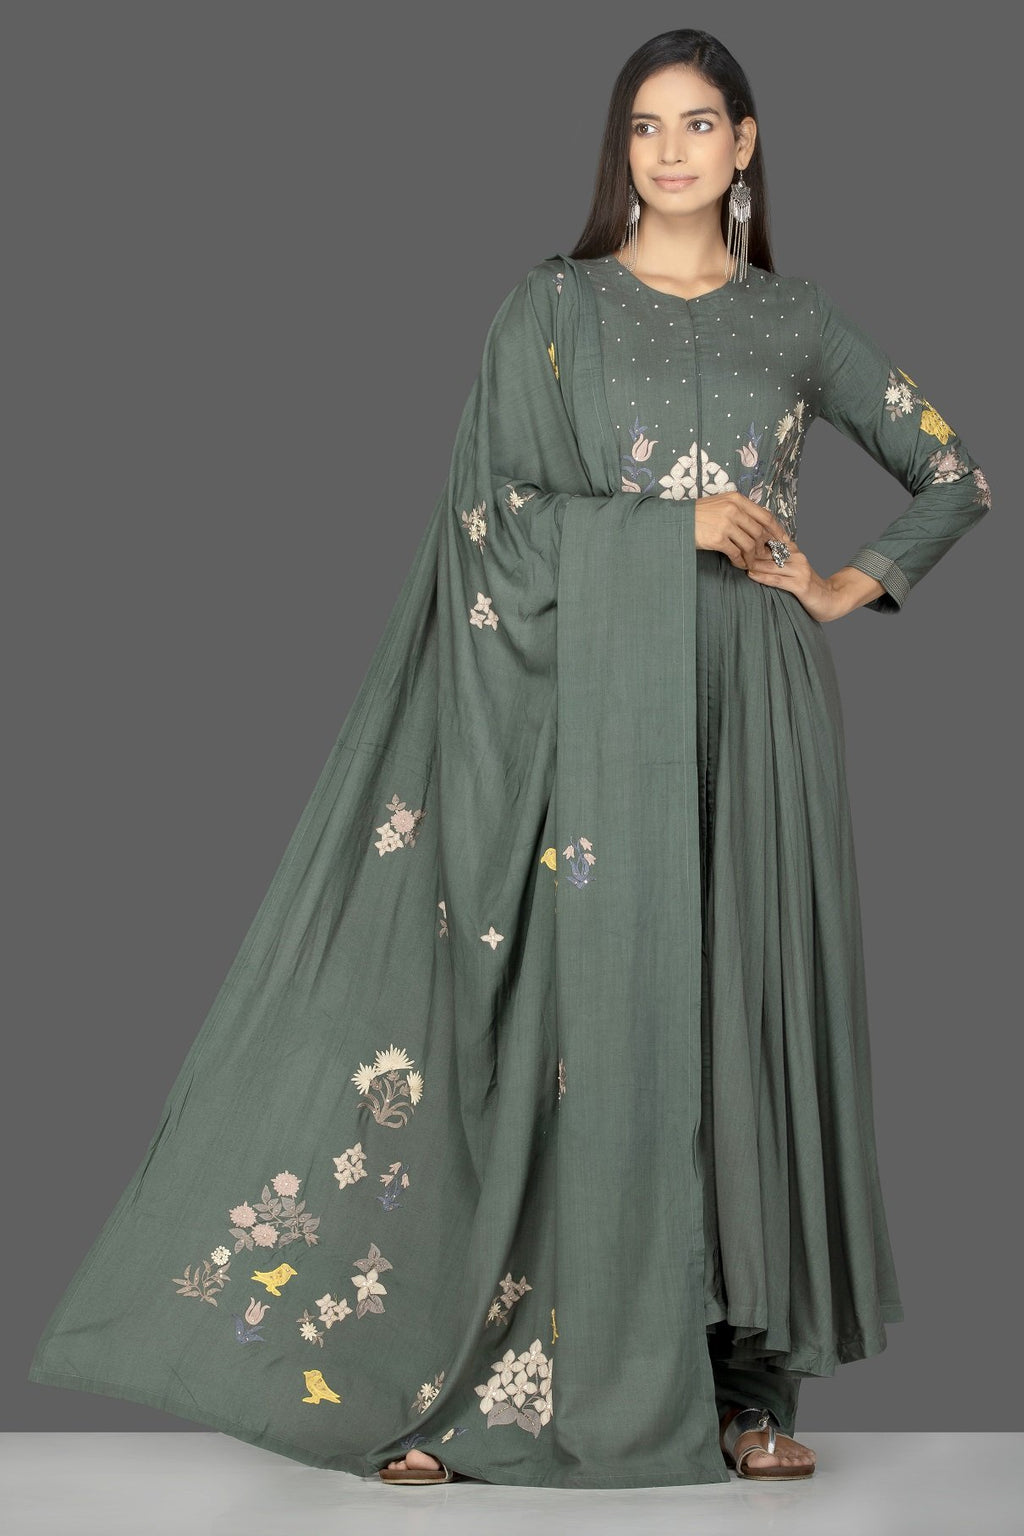 Buy lovely green embroidered Anarkali suit with palazzo online in USA. Flaunt ethnic fashion on weddings and festive occasions with latest designer lehengas, Indian dresses, traditional Anarkali suits from Pure Elegance Indian clothing store in USA.-full view